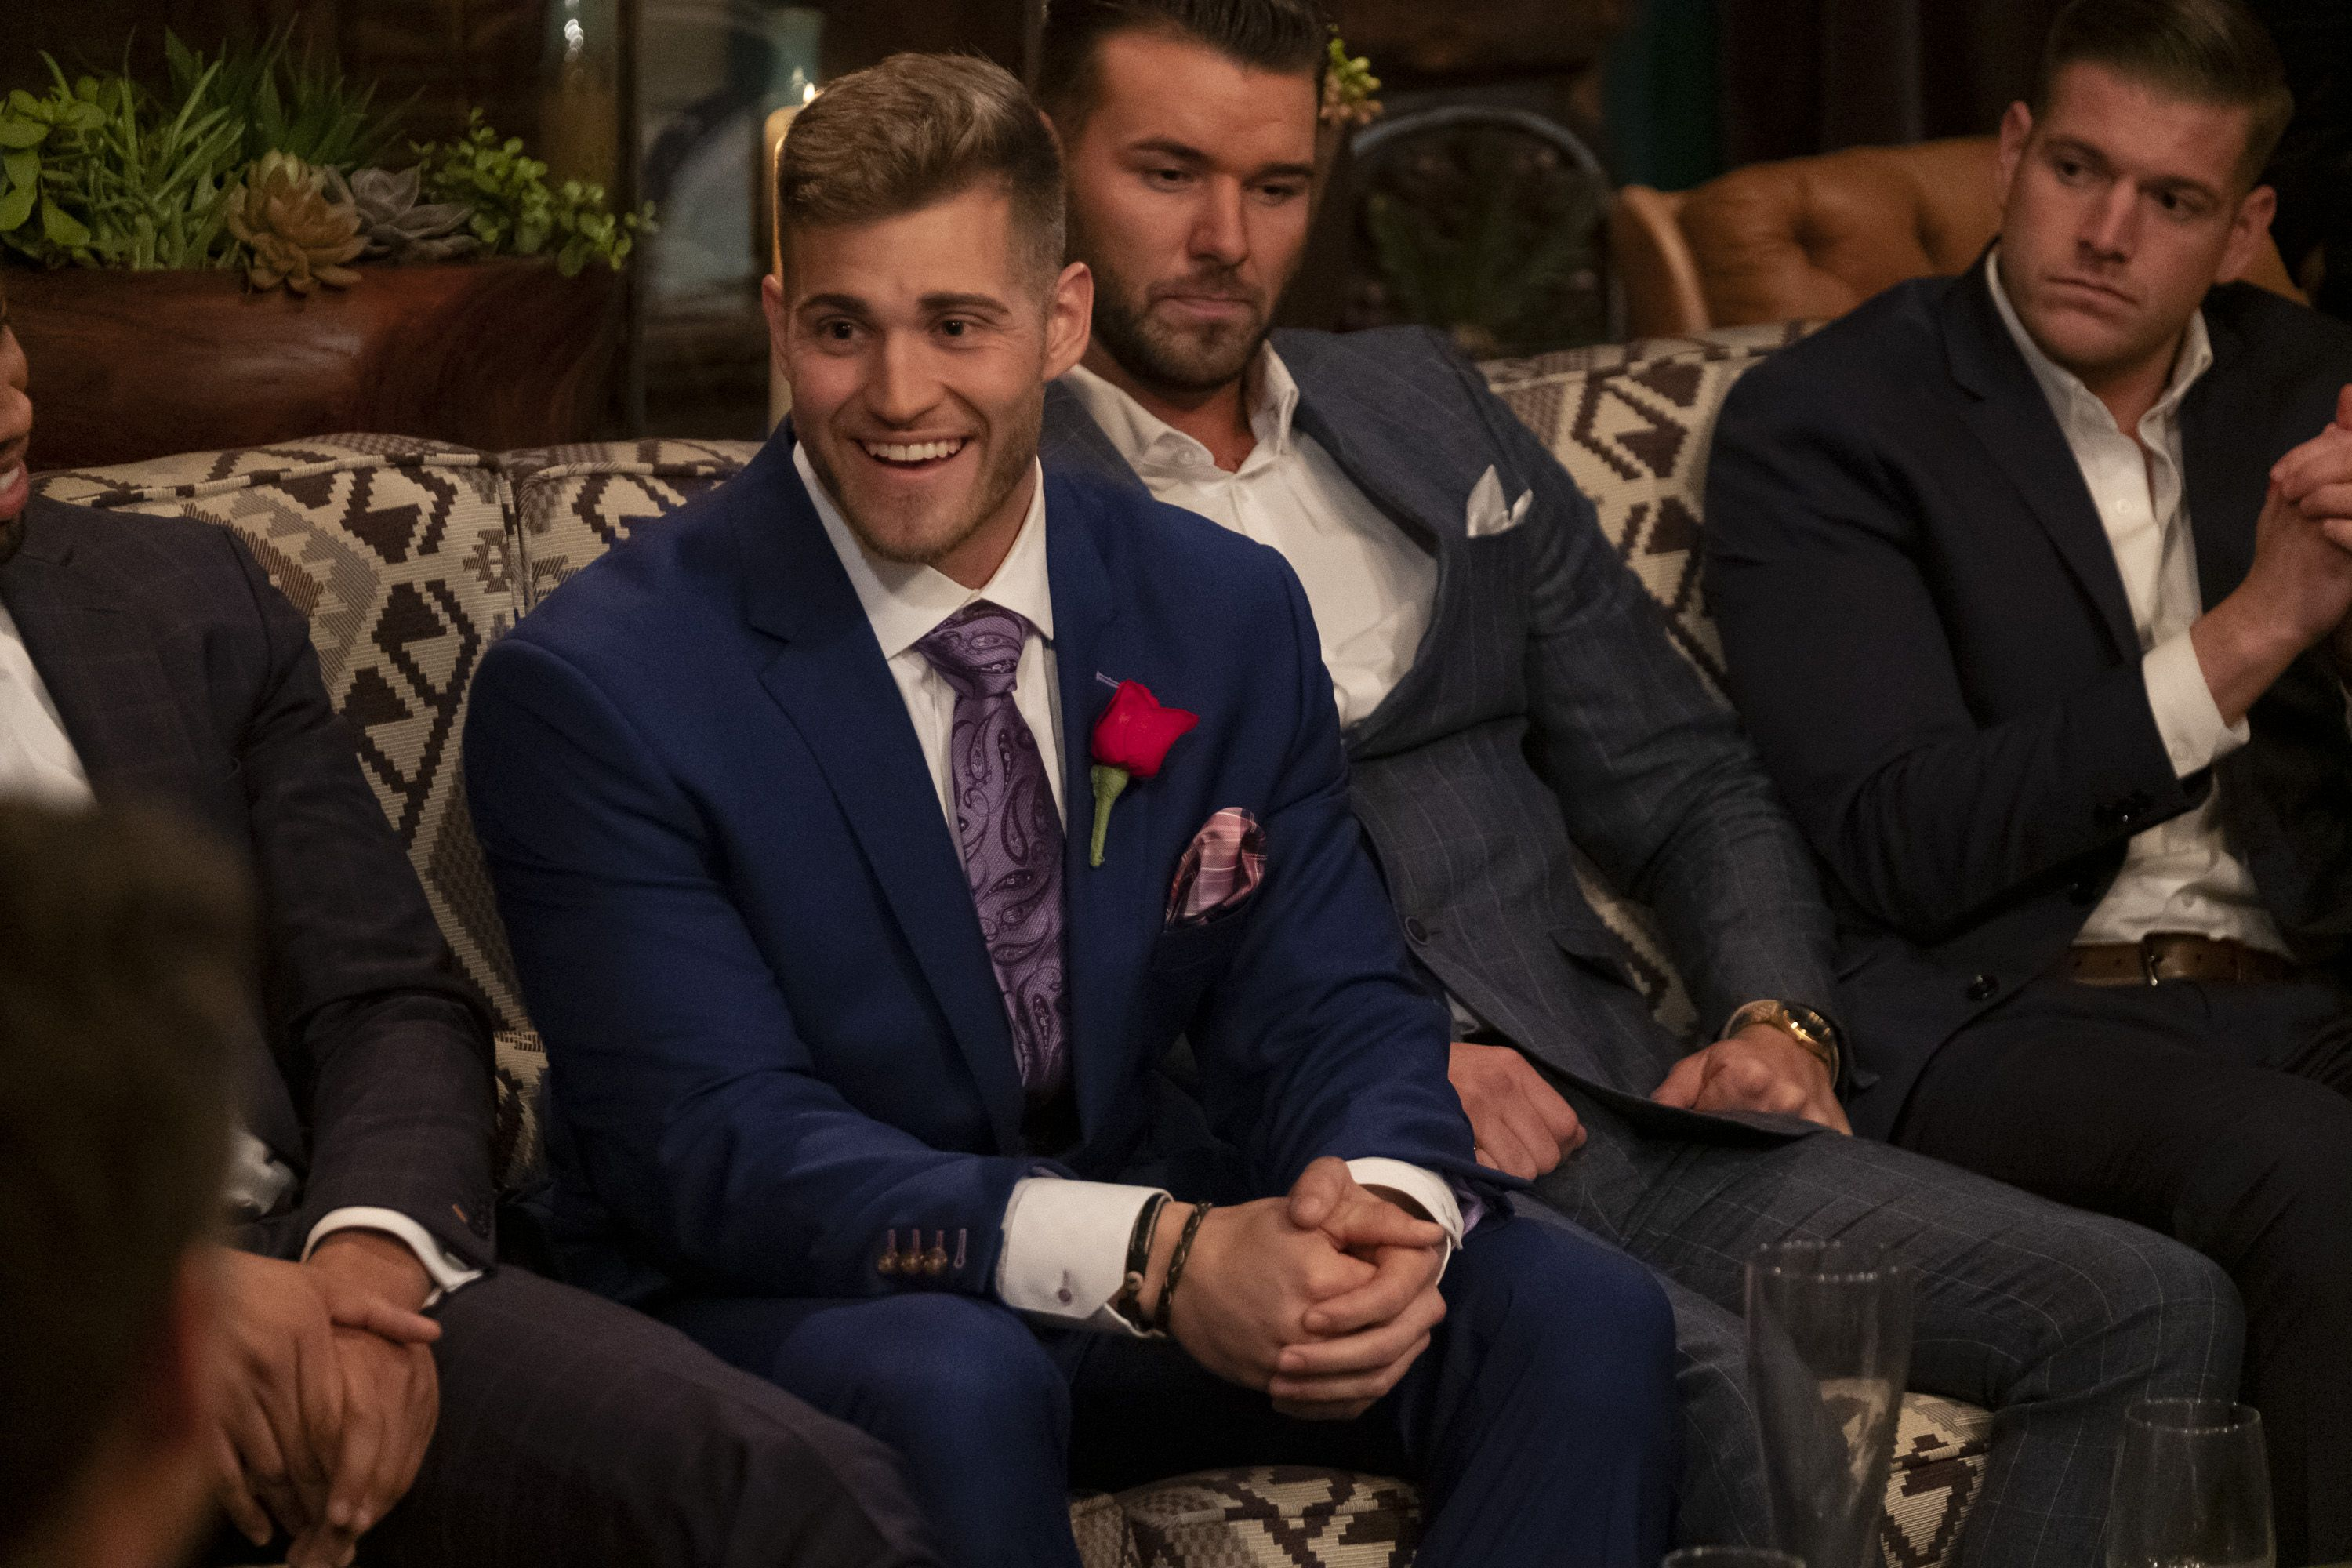 'The Bachelorette' Contestant Luke Parker Said He's Falling In Love in Episode 2—and People Lost It